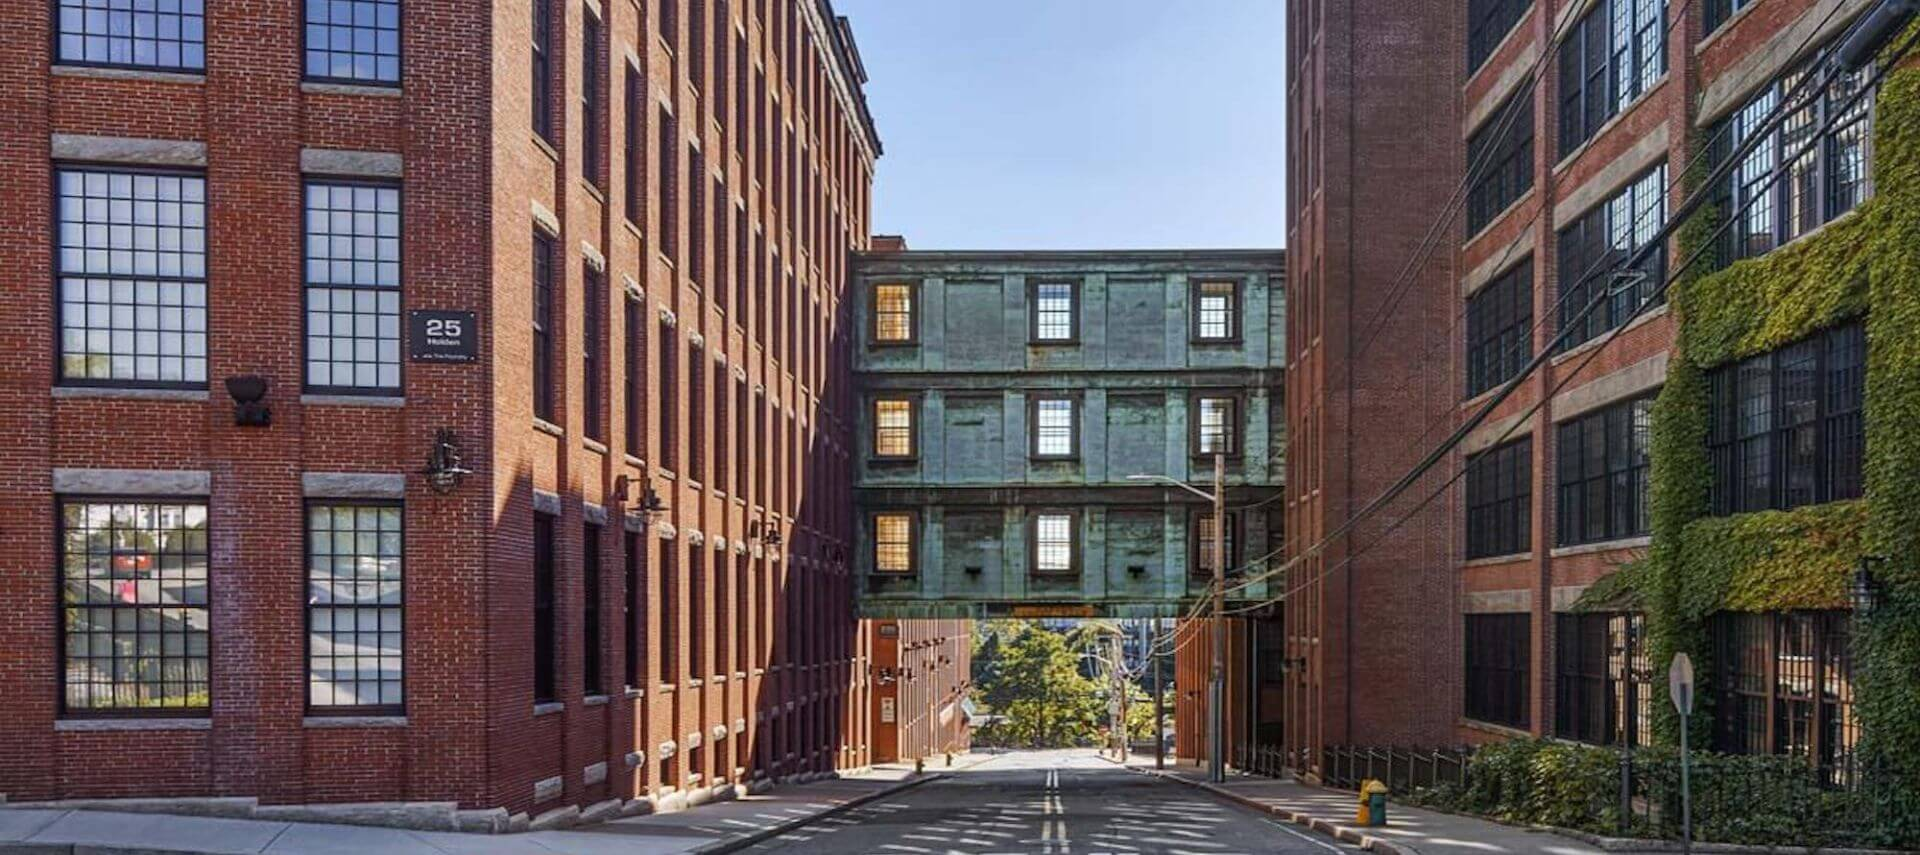 A three-story walk-through hangs between two brick buildings on a city street.